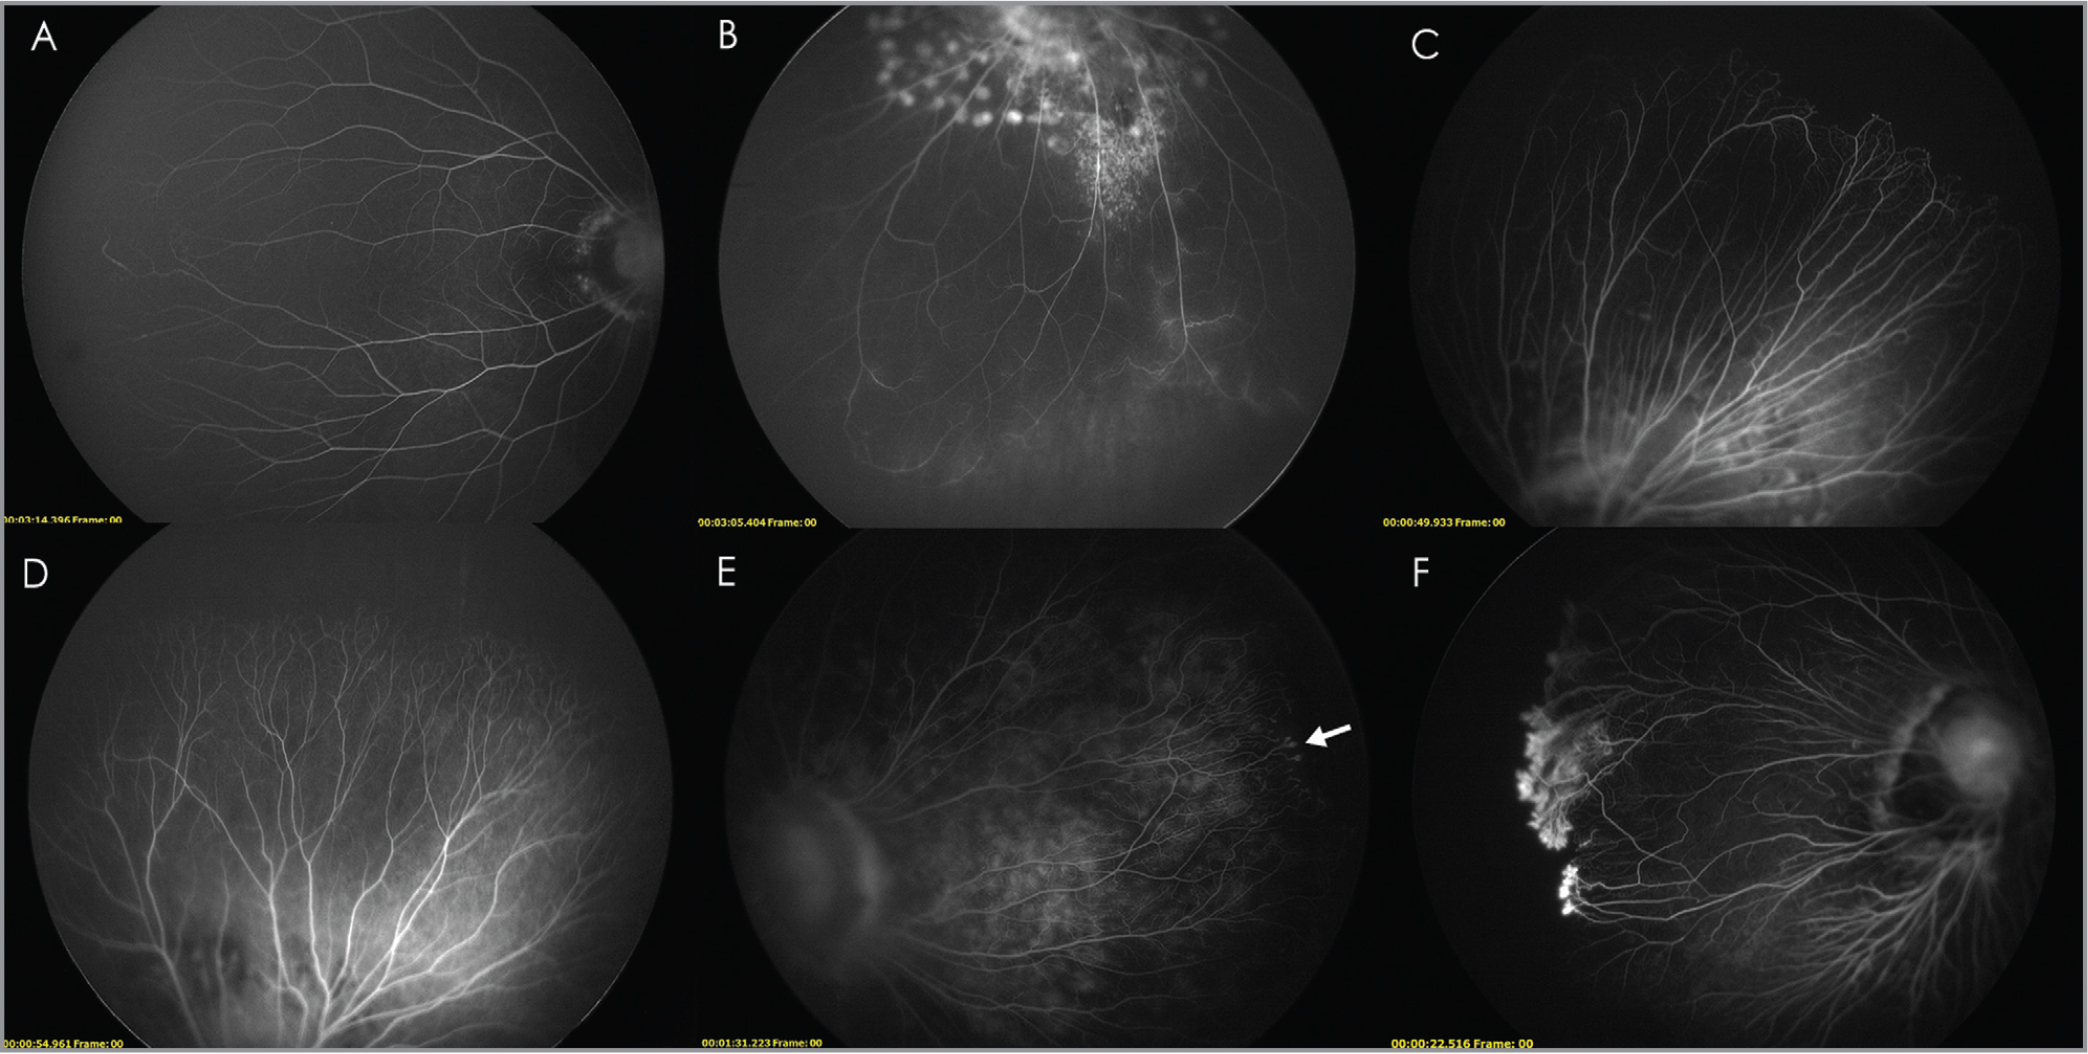 Fluorescein angiograms showing different vascular terminals. (A) Branch-like terminals. (B) Loops (laser photocoagulation around the disc was performed as a prophylactic treatment to retinal detachment.) (C) Networks. (D) Brush-like terminals. (E) Bulbous capillary terminals (white arrow). (F) Leakage from the vascular-avascular junction.